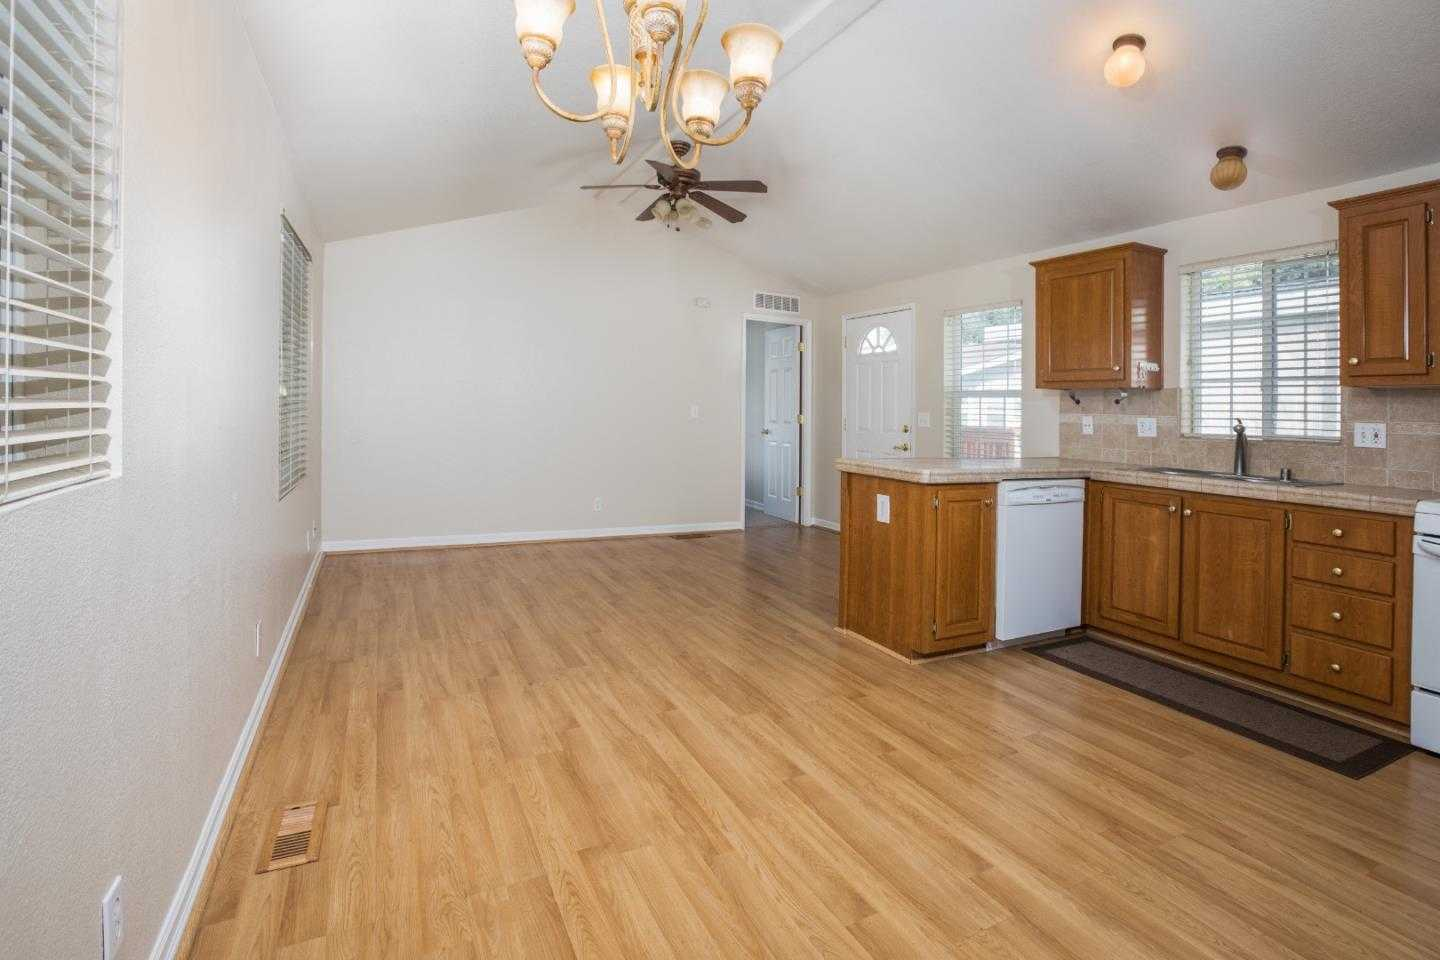 $279,000 - 3Br/2Ba -  for Sale in Scotts Valley